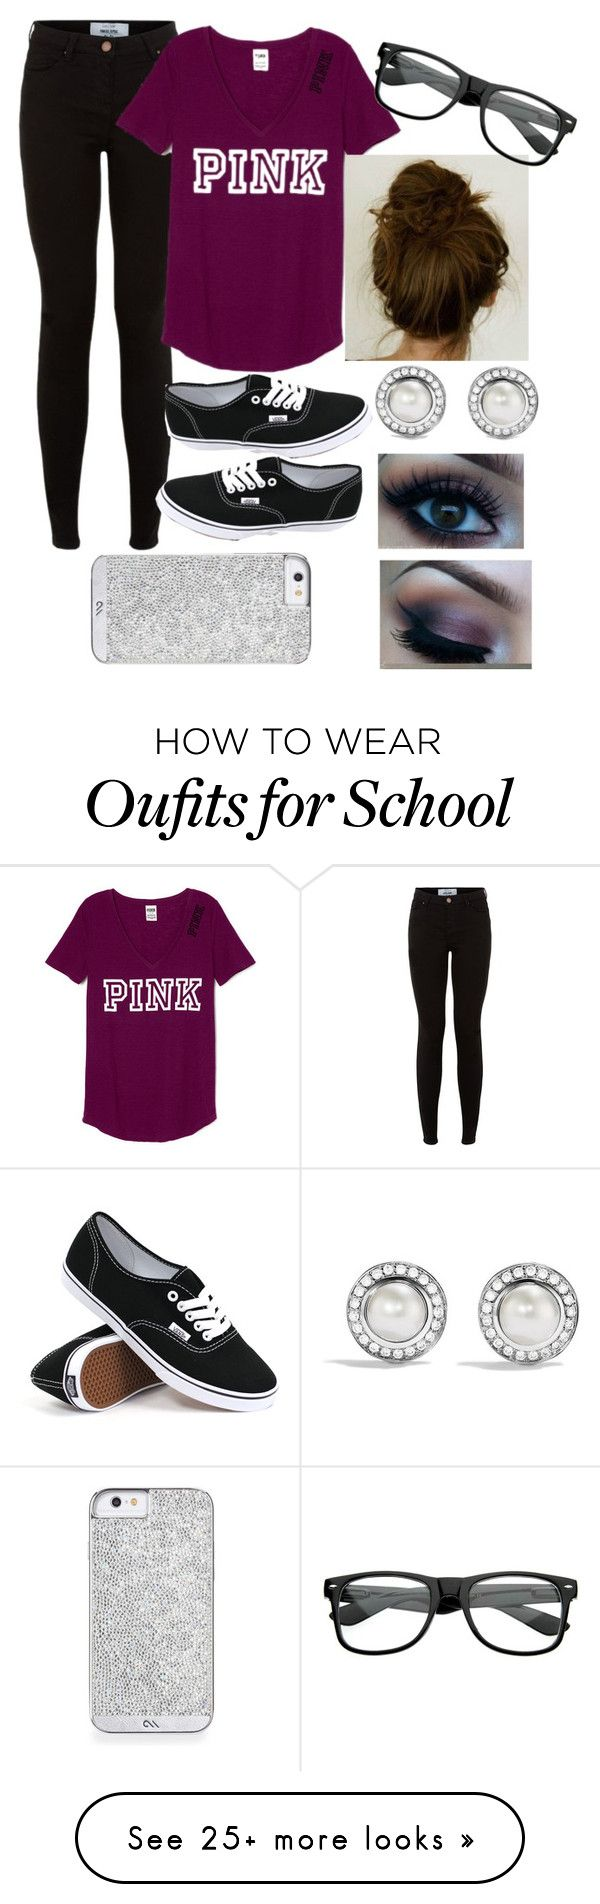 """""""casual day at school"""" by juliagstrange422 on Polyvore featuring Vans, David Yurman, women's clothing, women's fashion, women, female, woman, misses and juniors"""